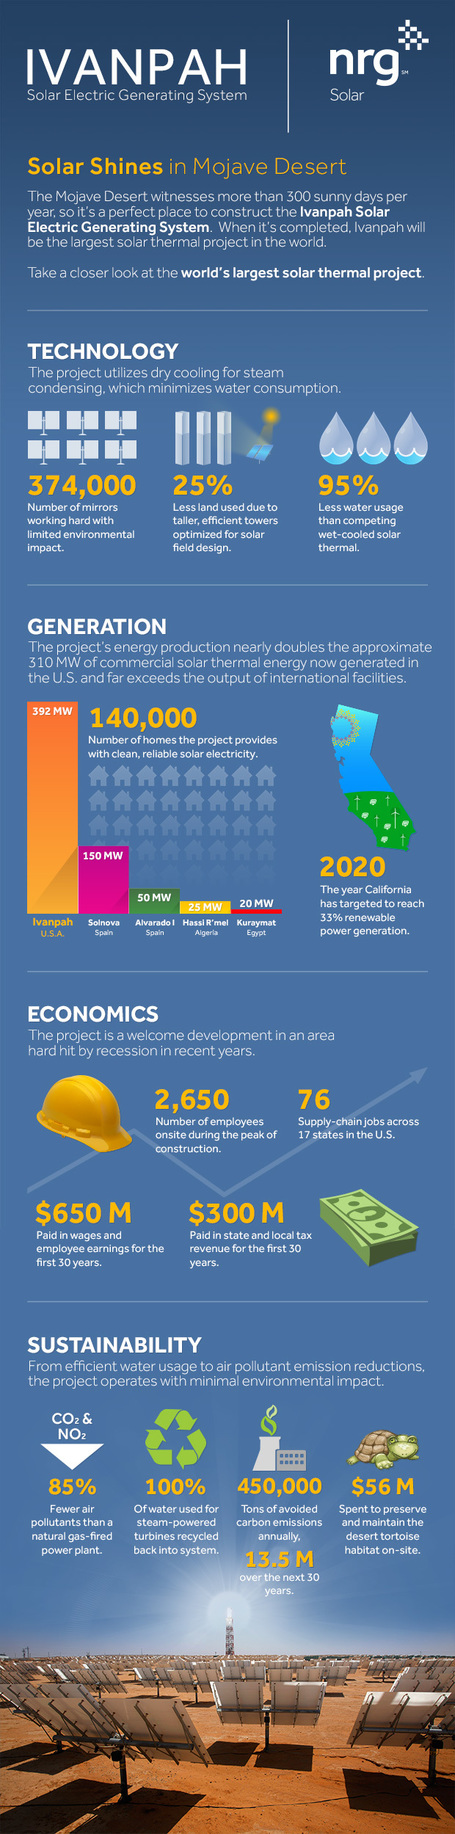 Ivanpah: the World's Largest Solar Thermal Project | green infographics | Scoop.it